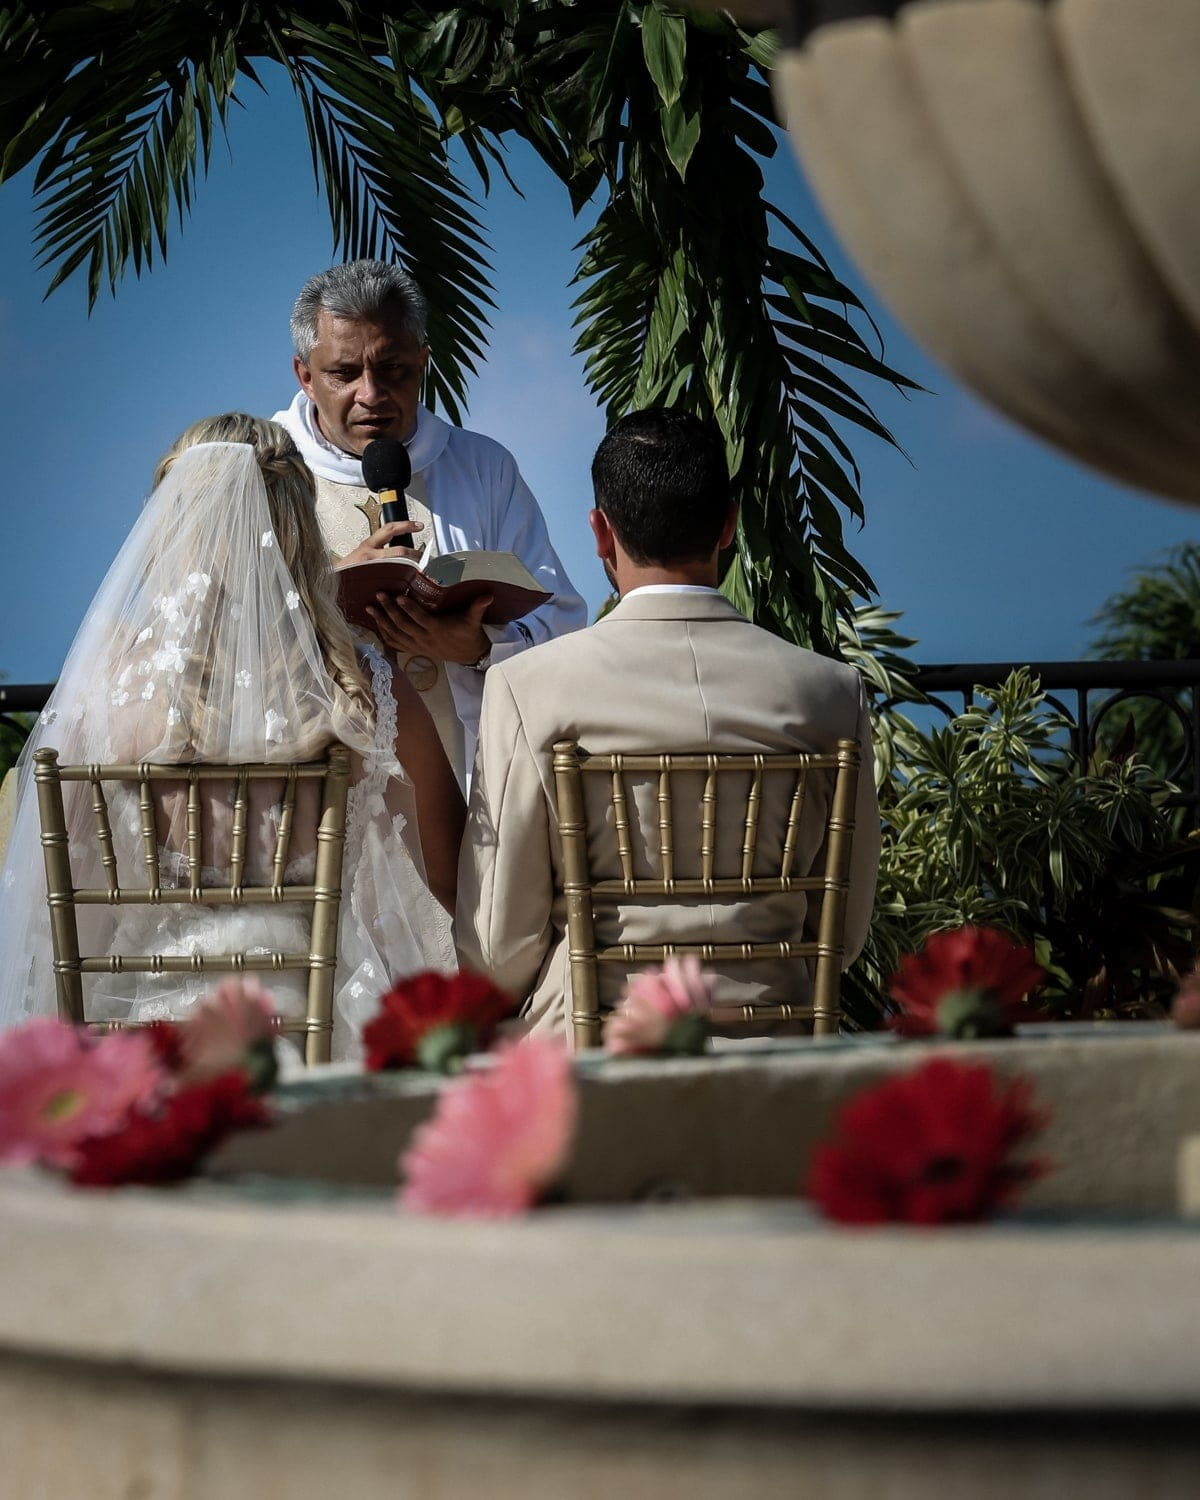 Bride and groom seated at altar during Catholic wedding ceremony.